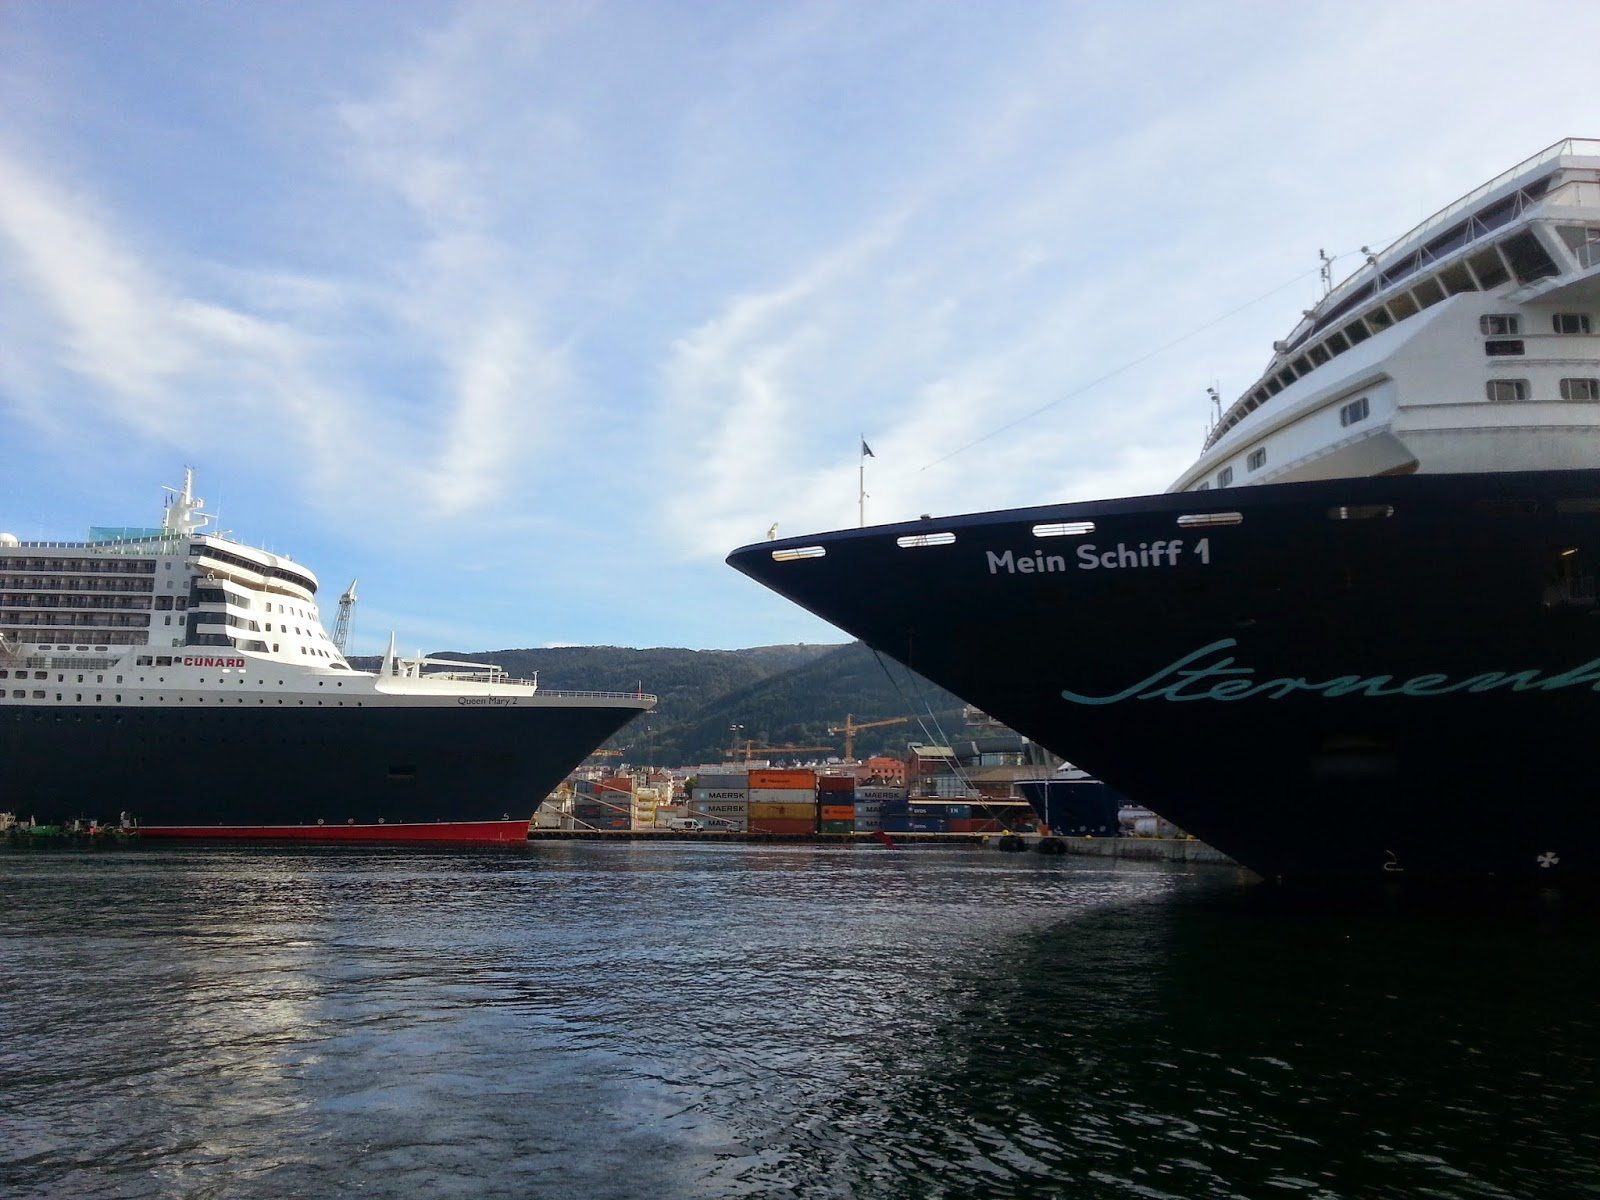 Cruise Ship Mein Schiff 1 and Queen Mary 2 in Bergen